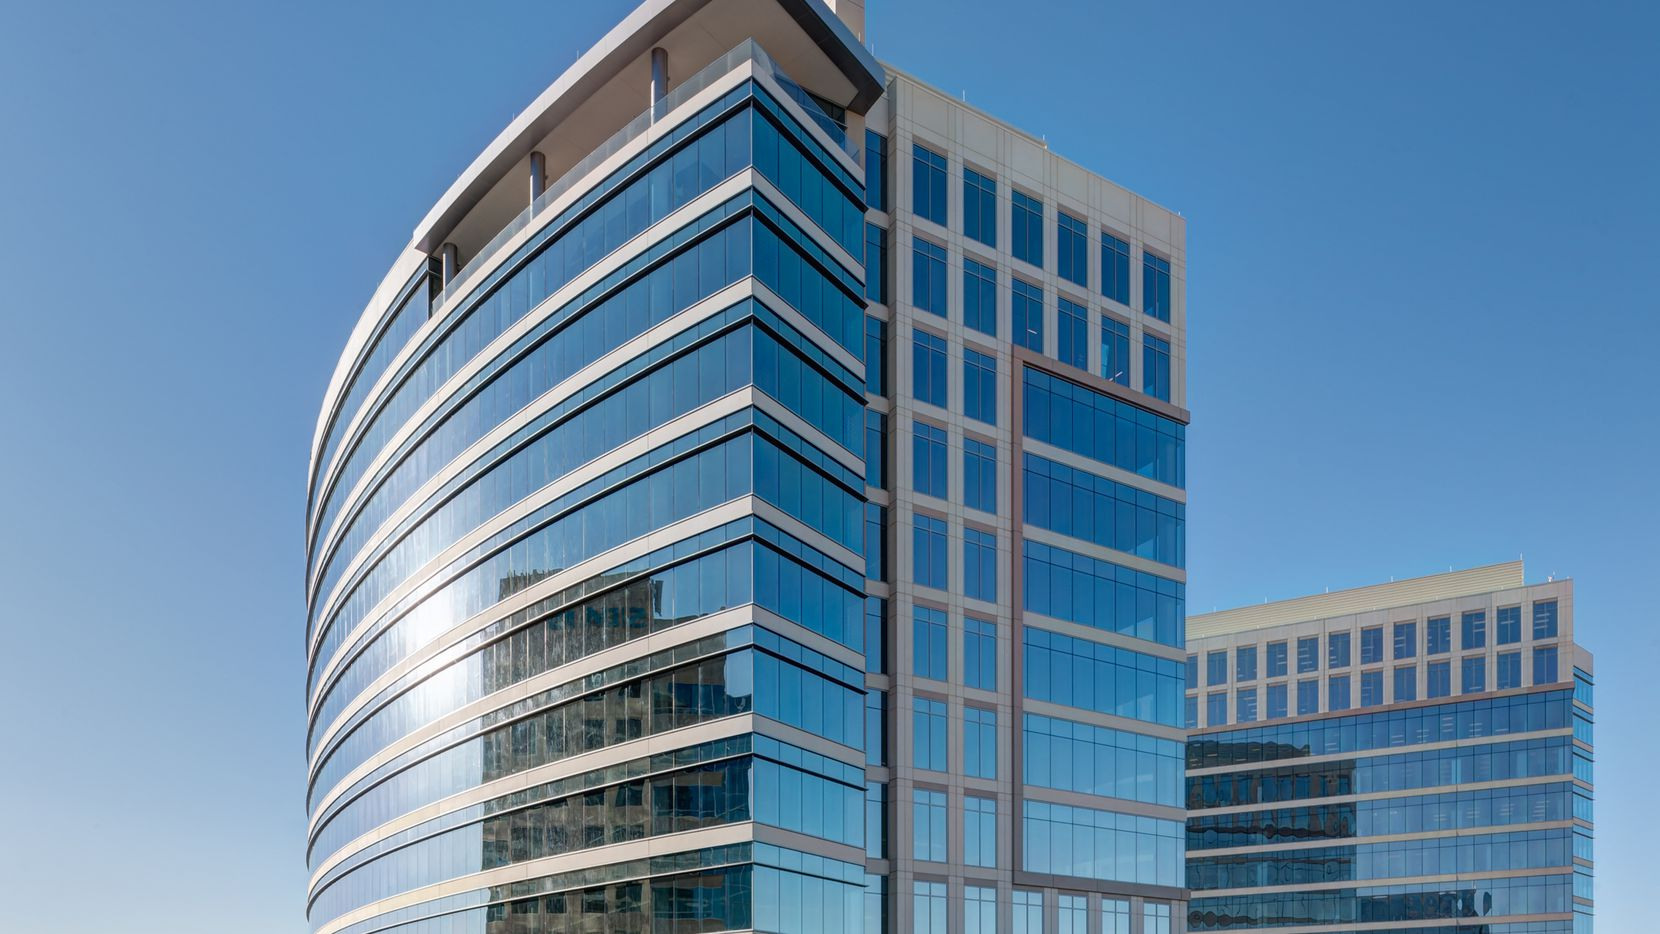 Geoforce is moving its headquarters to the Granite Park V building in West Plano.